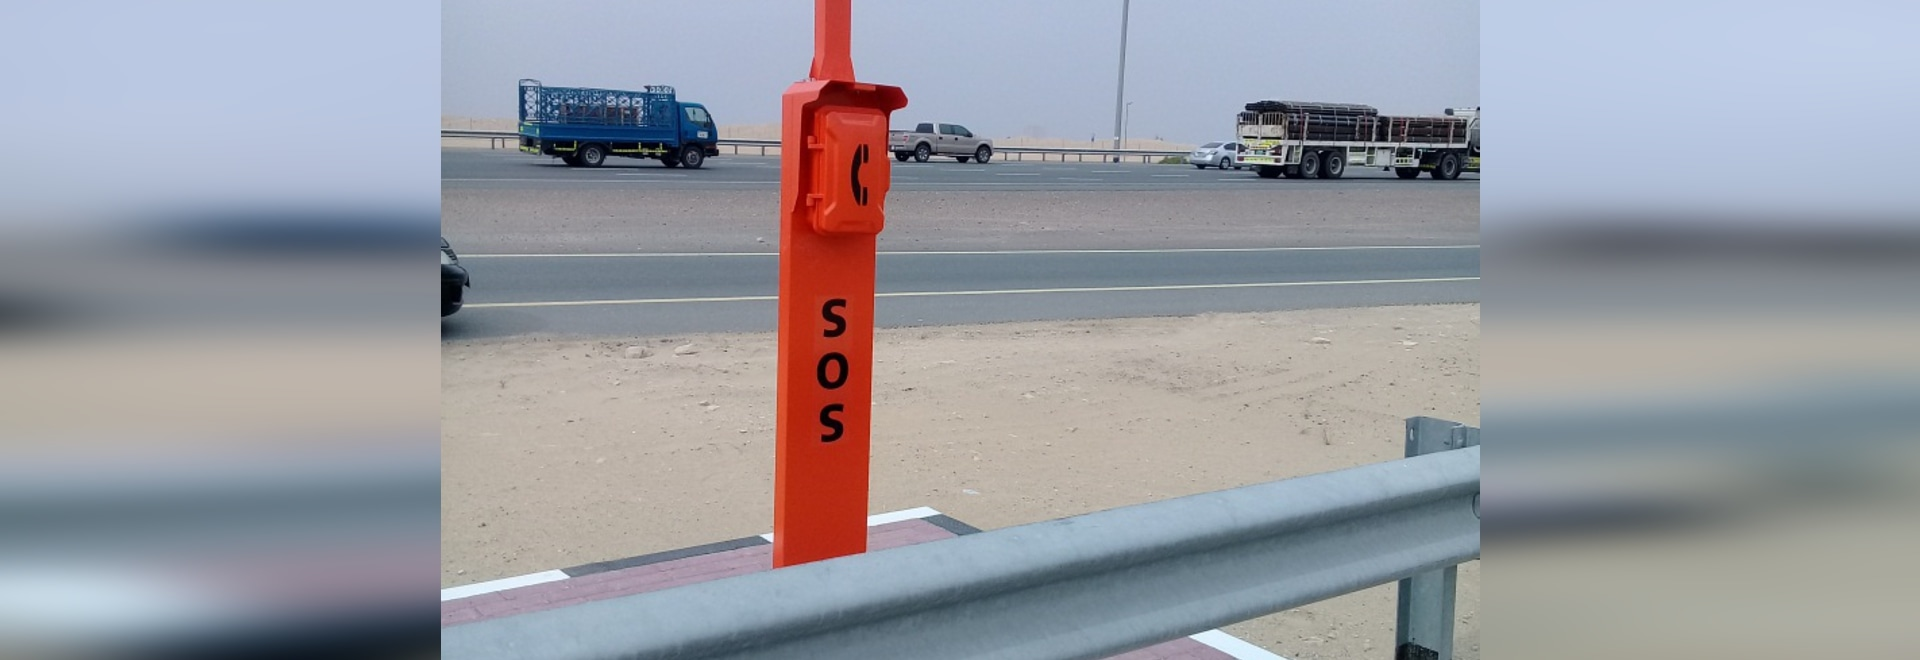 New Design Emergency Roadside Telephone for Dubai Highway Project